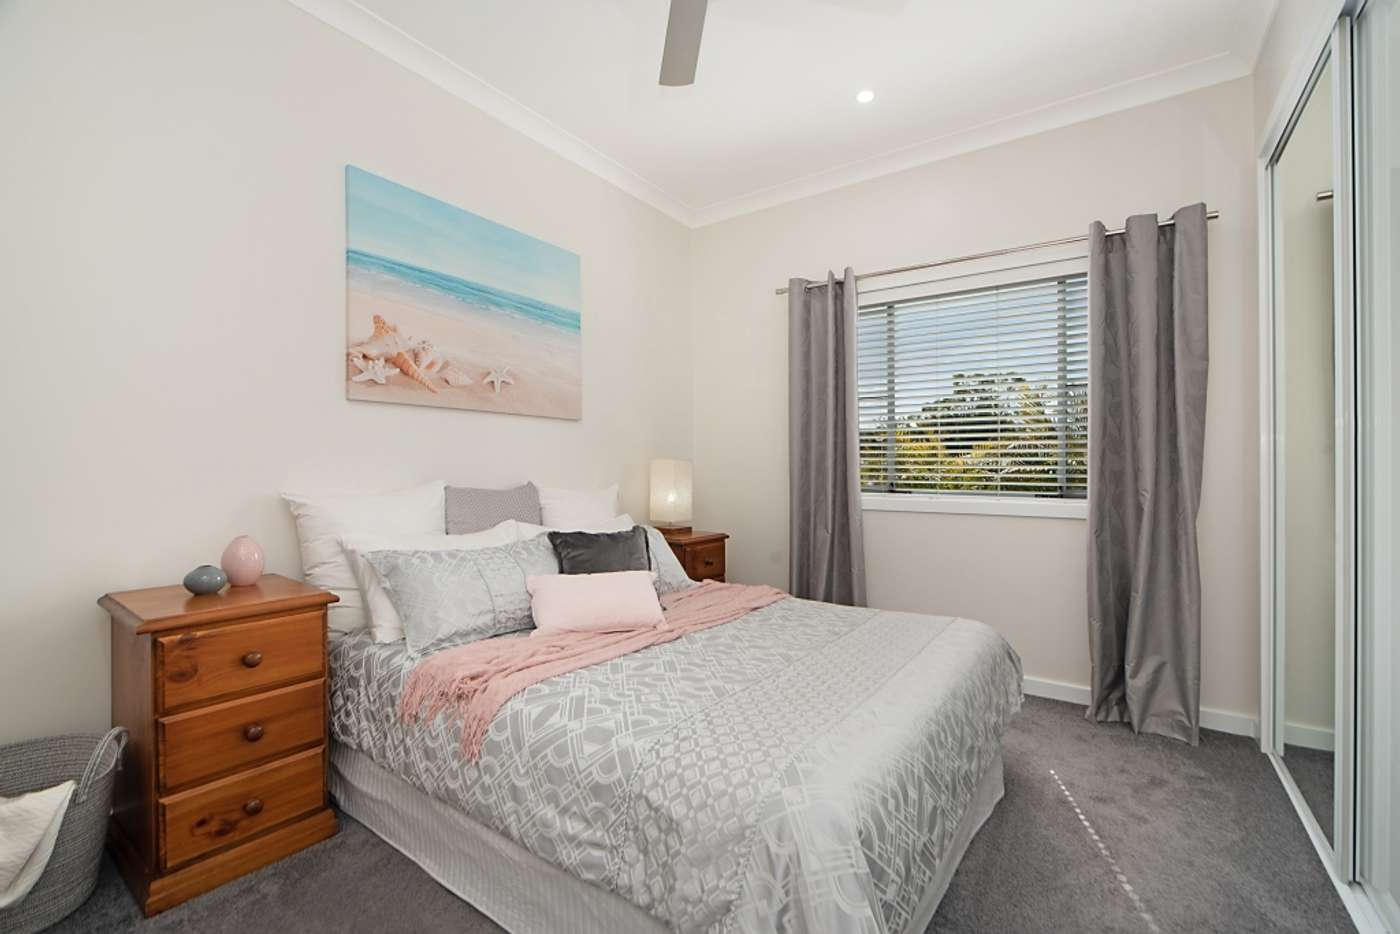 Sixth view of Homely house listing, 18 Redrose Ave, Belmont NSW 2280